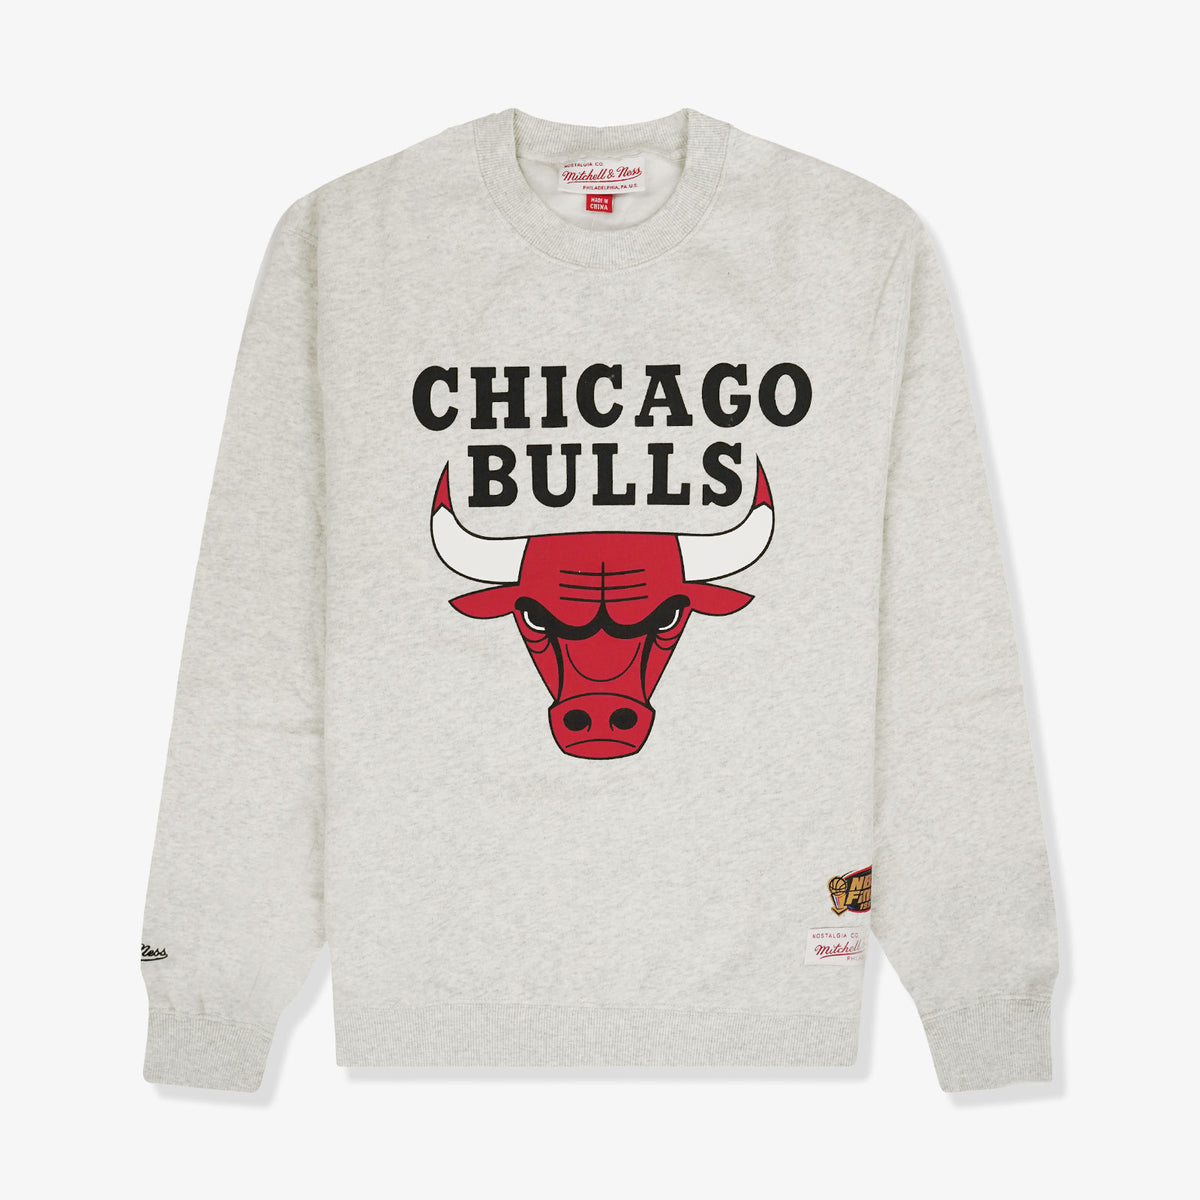 Chicago Bulls Basic Team Logo Crew Sweatshirt - White Marle